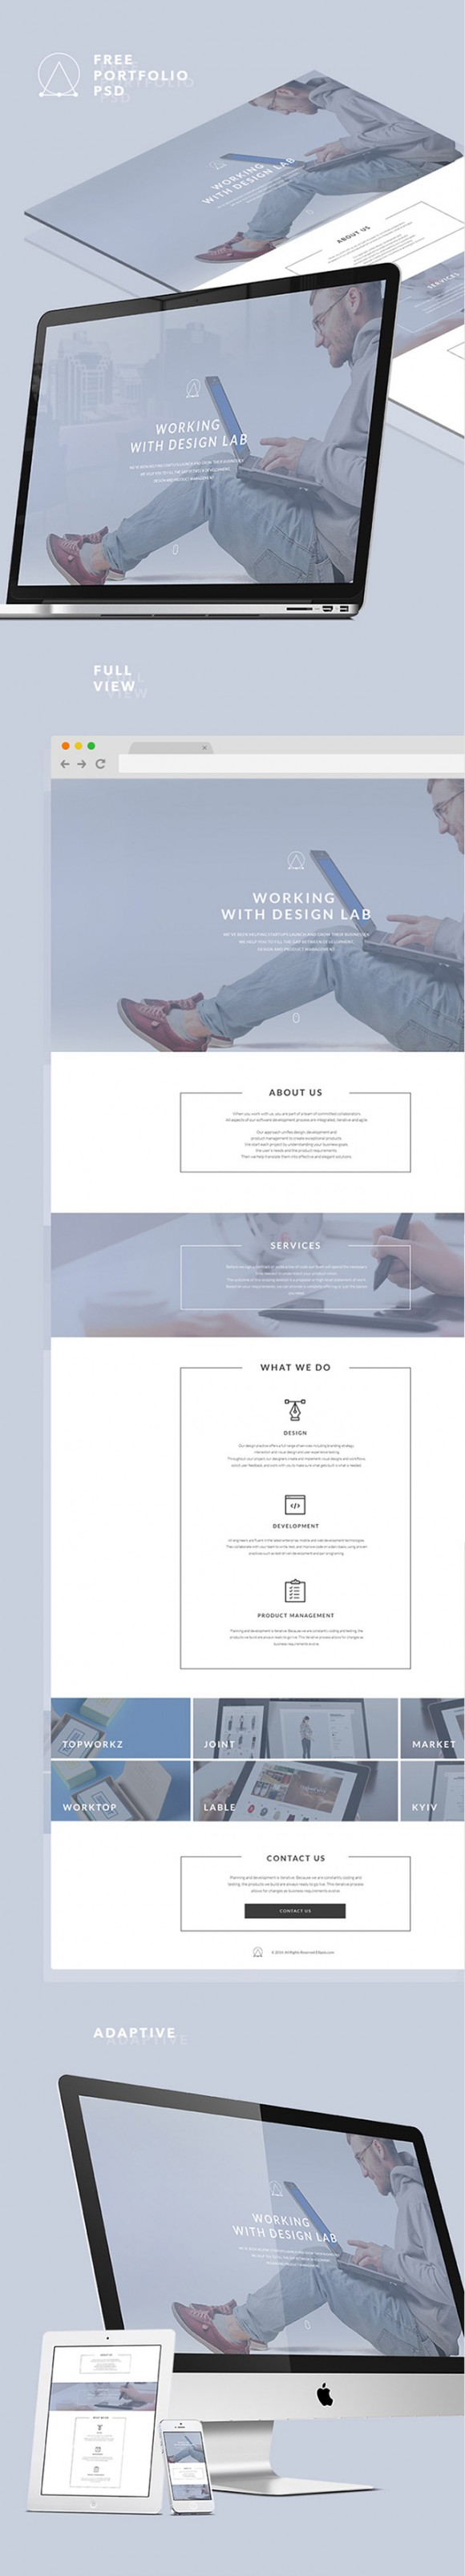 Elipsis portfolio template - Full view